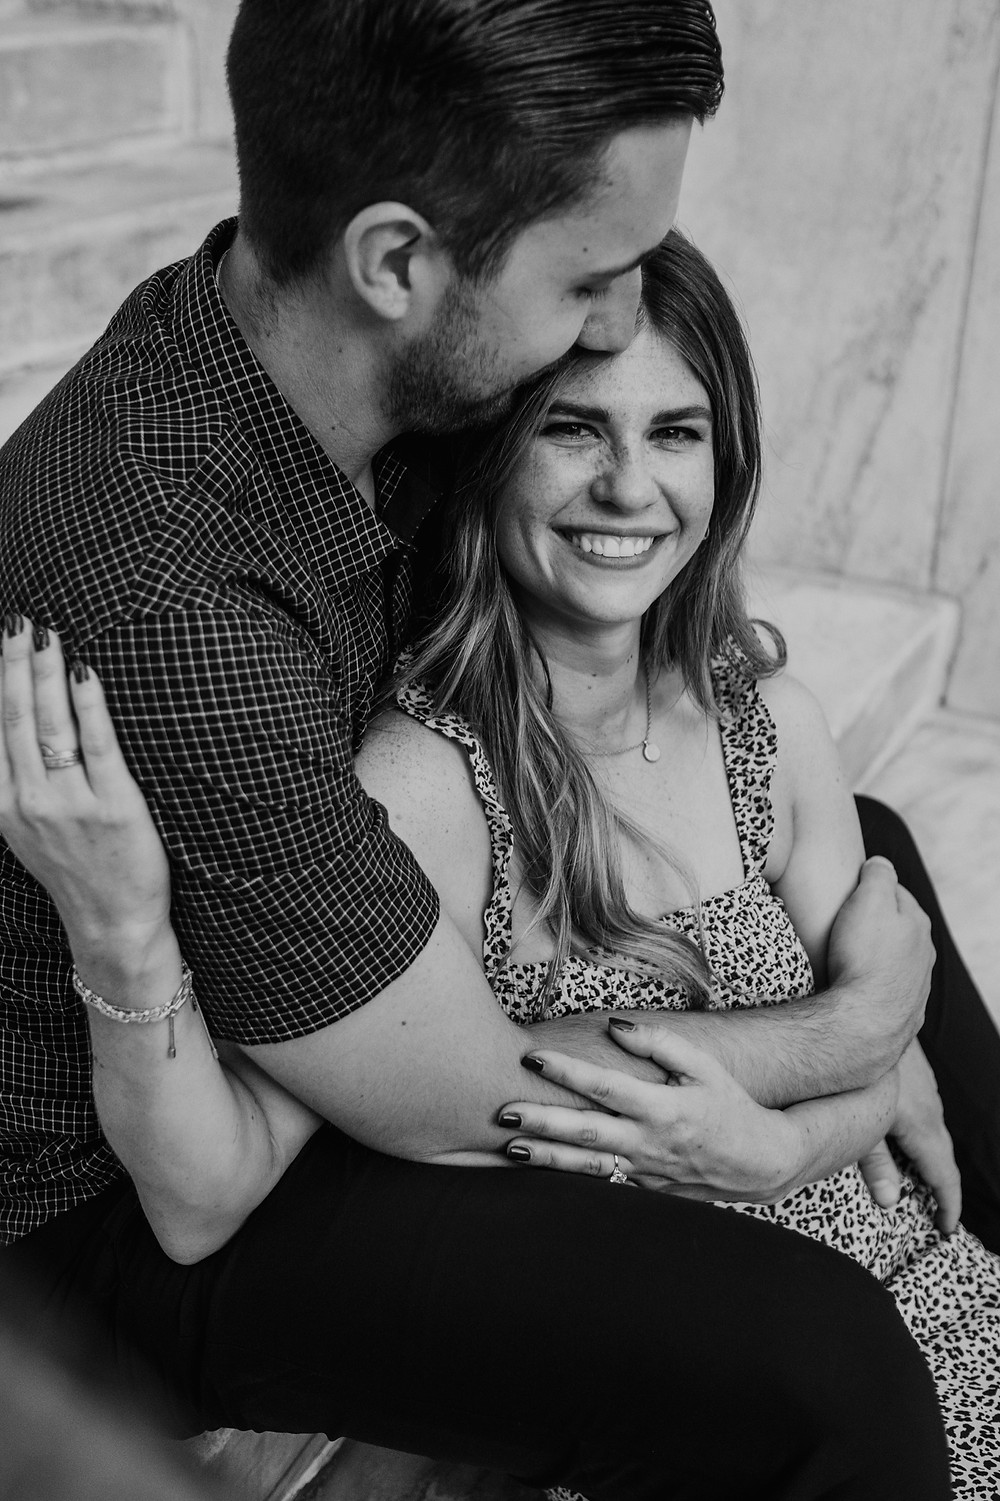 Close up of couple sitting on steps for engagement photos. Photographed by Nicole Leanne Photography.